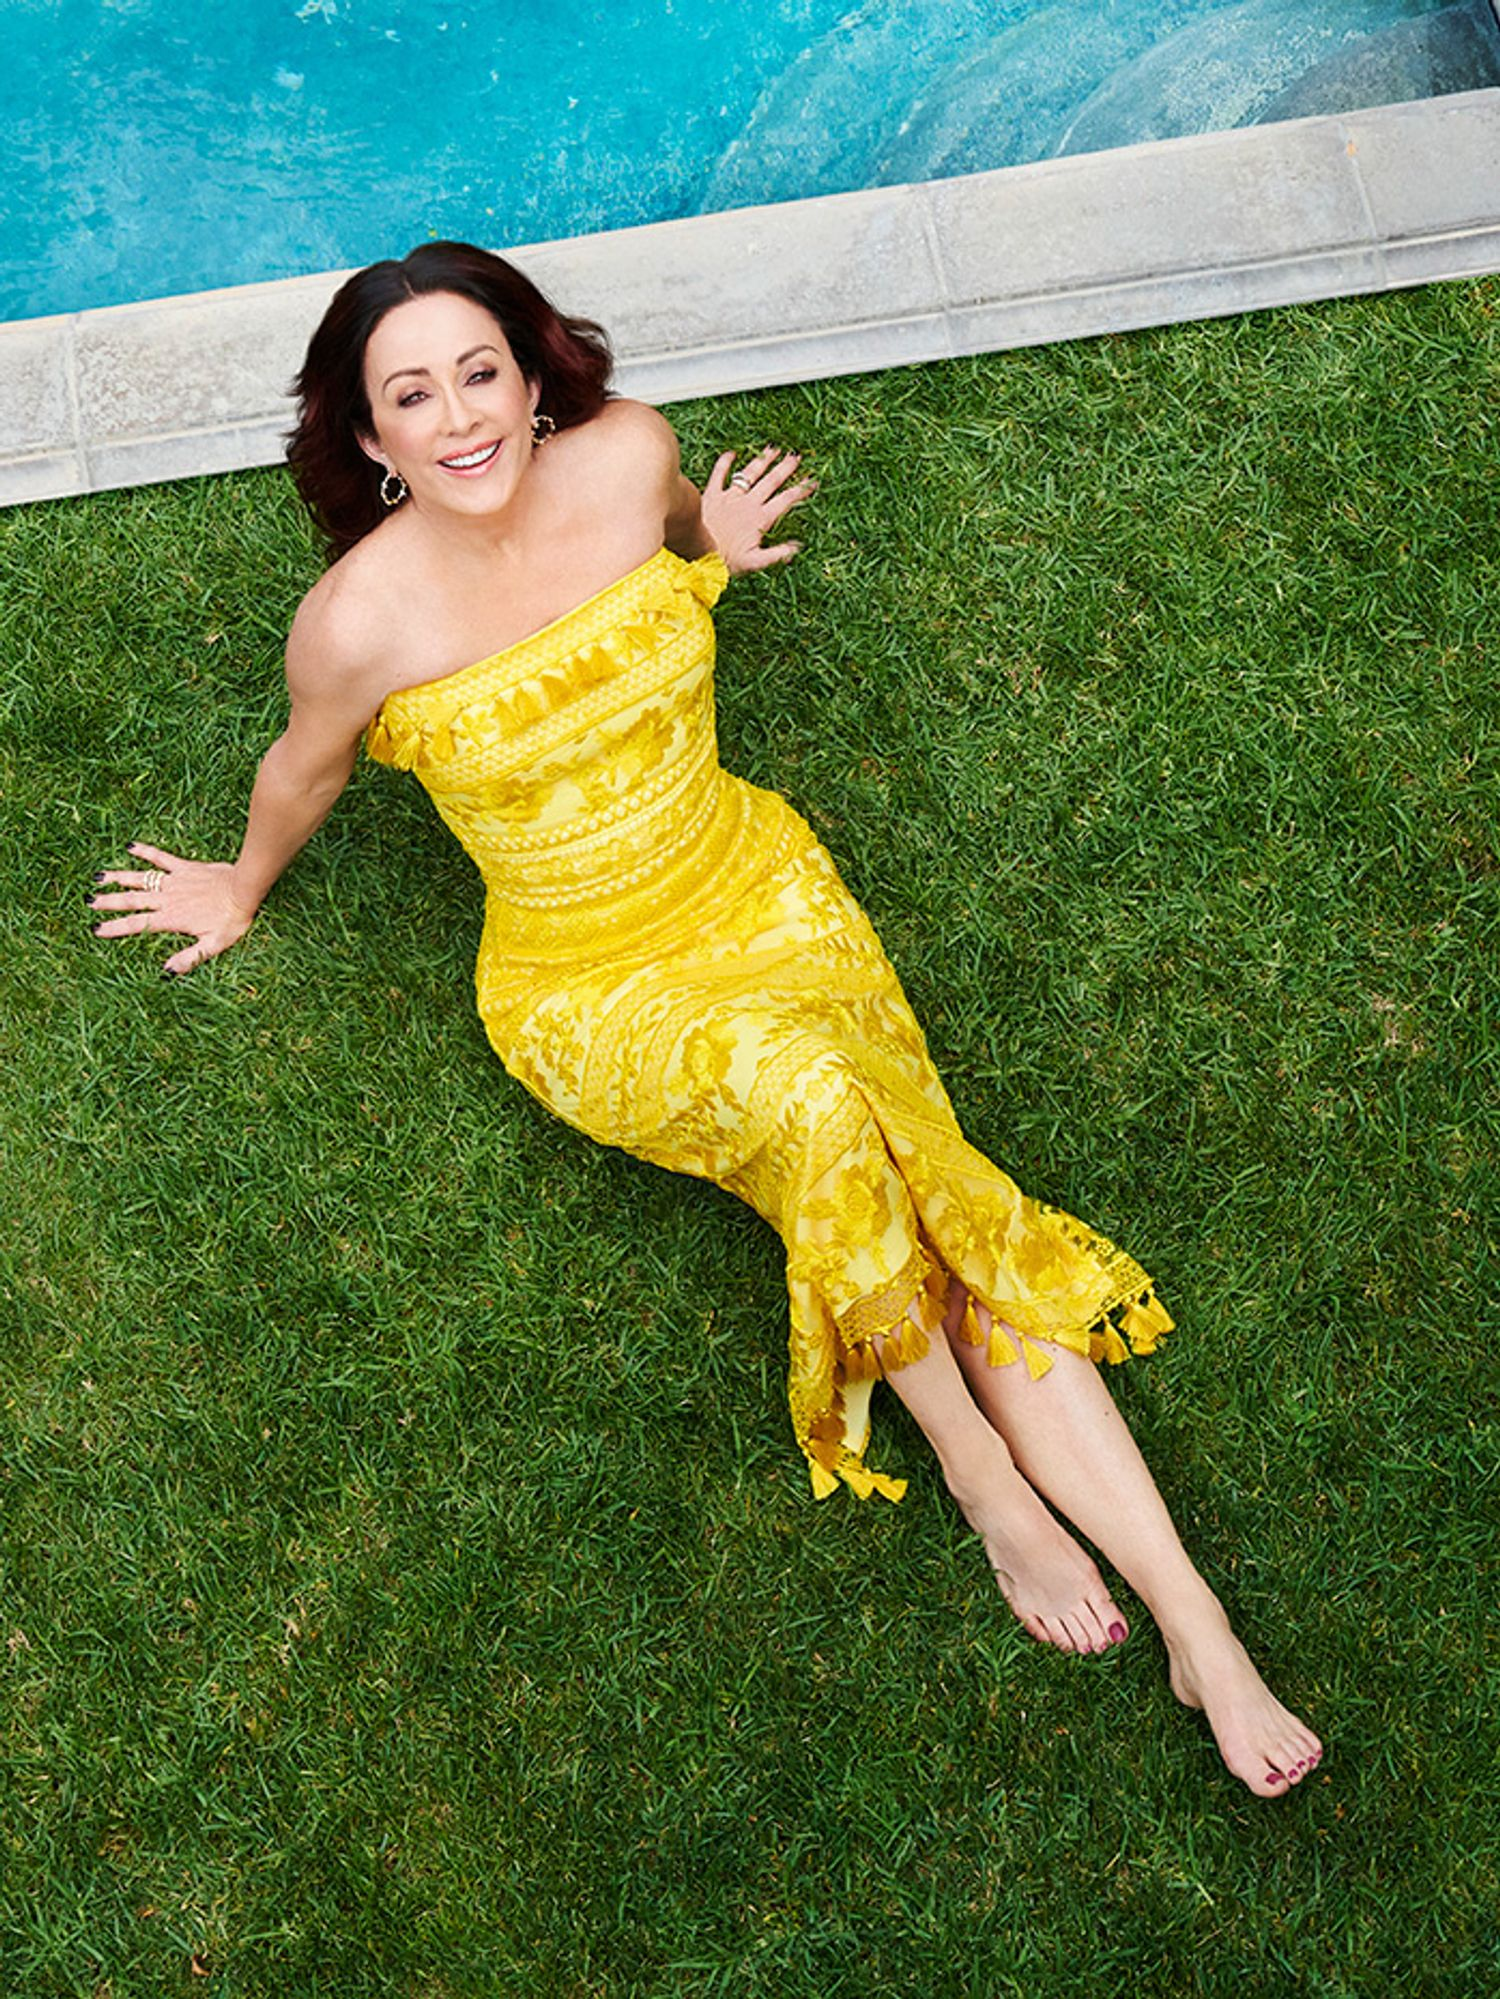 Patricia Heaton sitting on grass in a yellow dress.